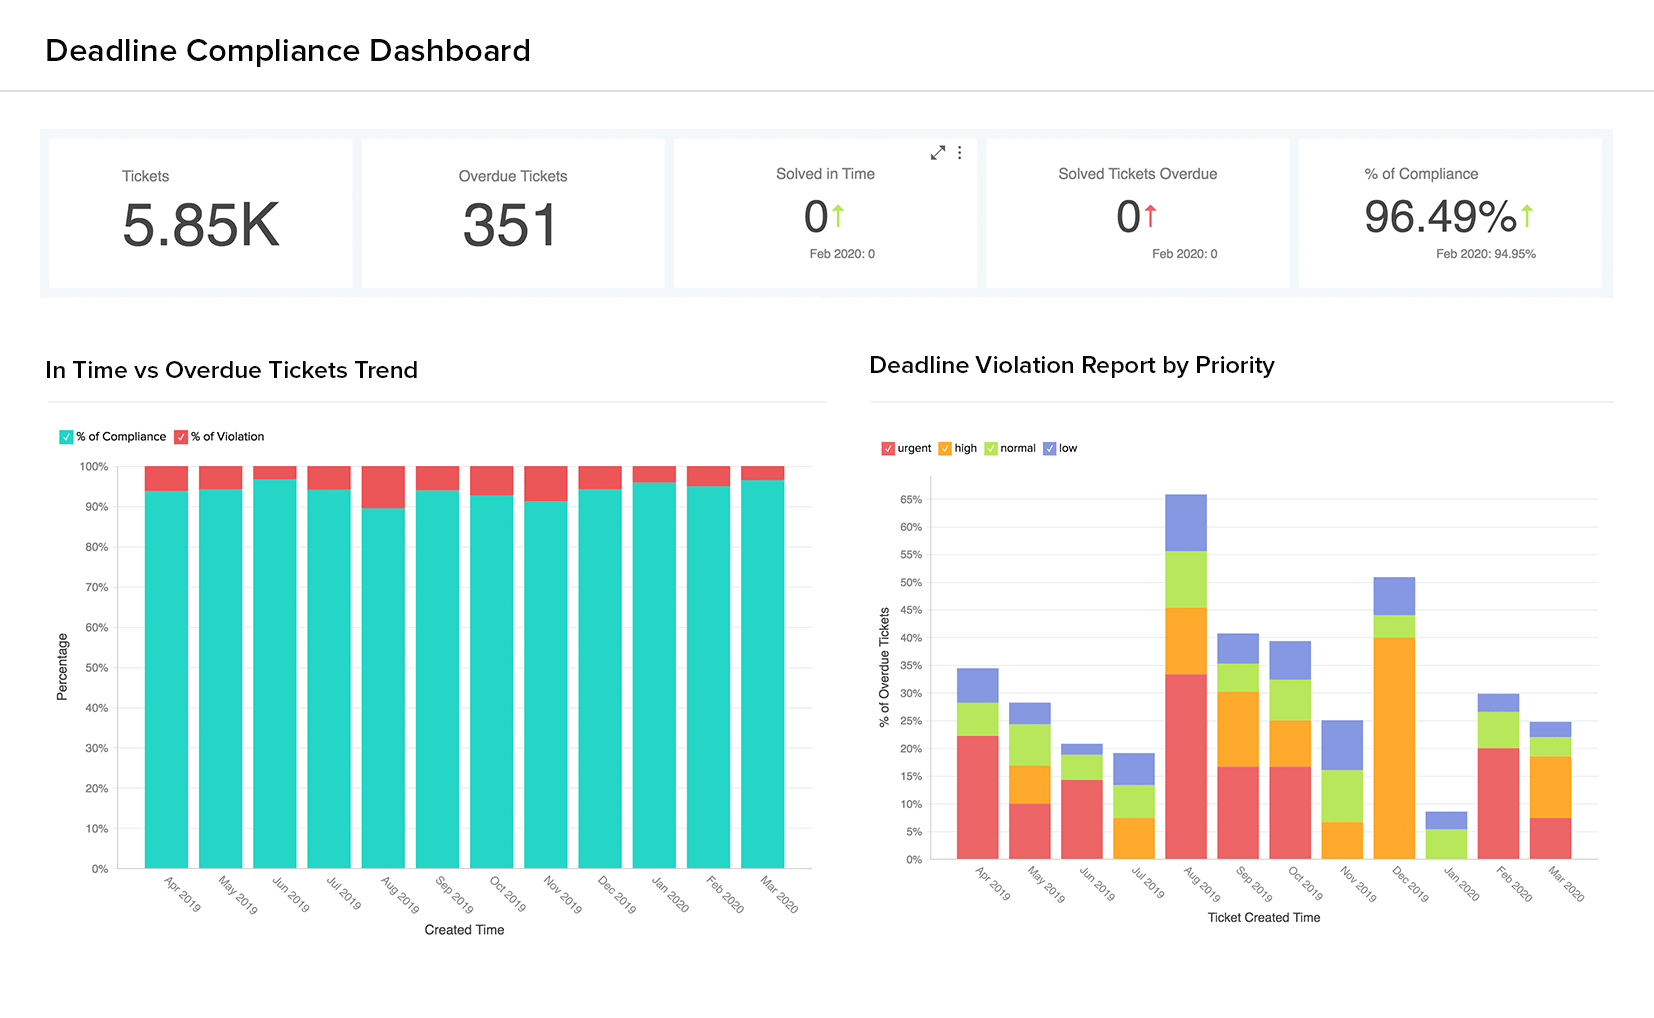 Deadline Compliance Dashboard